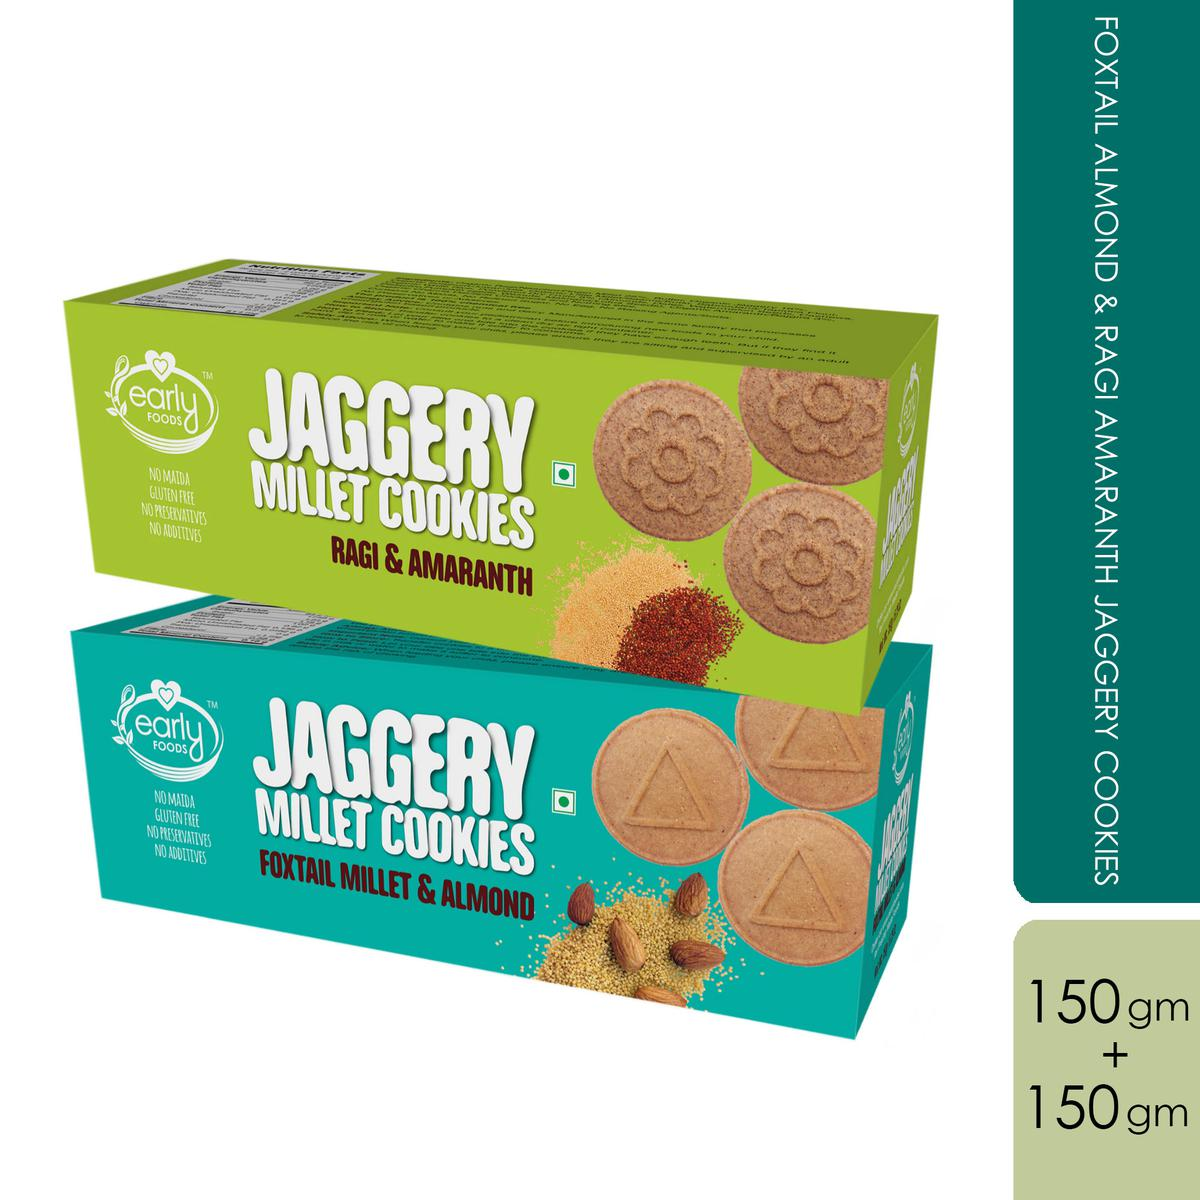 Early Foods - Assorted Pack of 2 - Foxtail Almond & Ragi Amaranth Jaggery Cookies X 2, 150g each